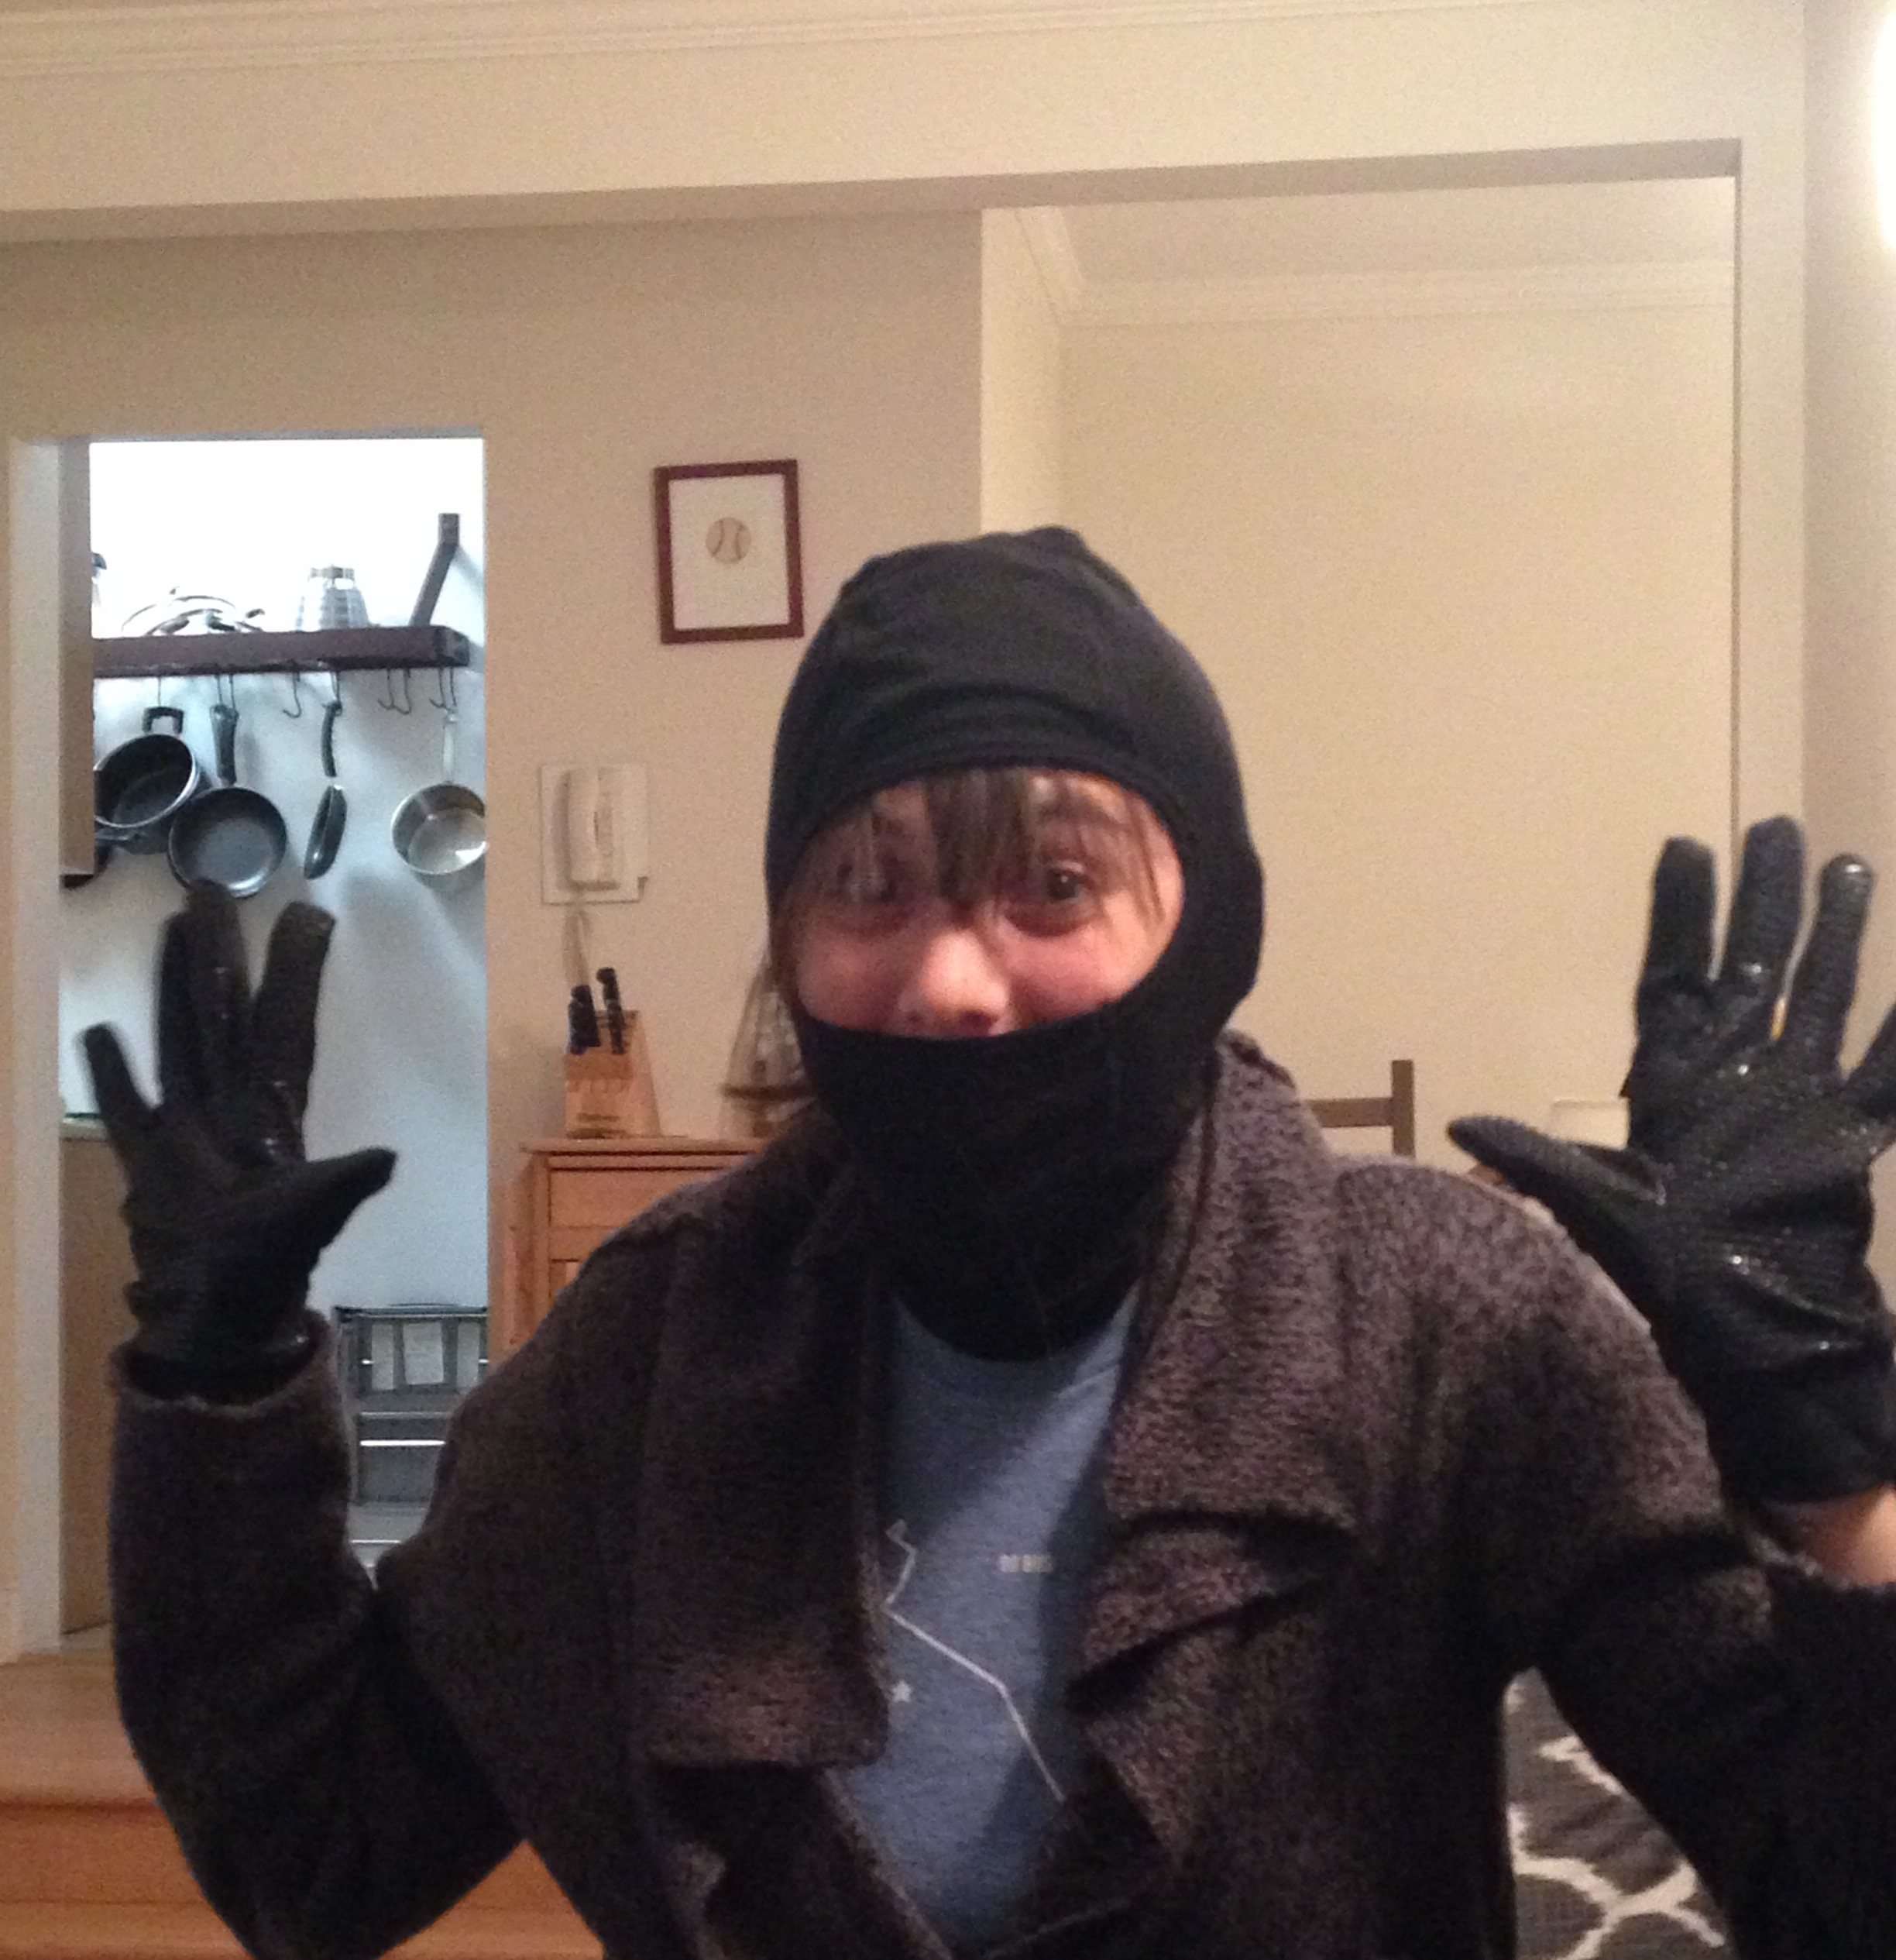 the author sampling some running headgear and gloves